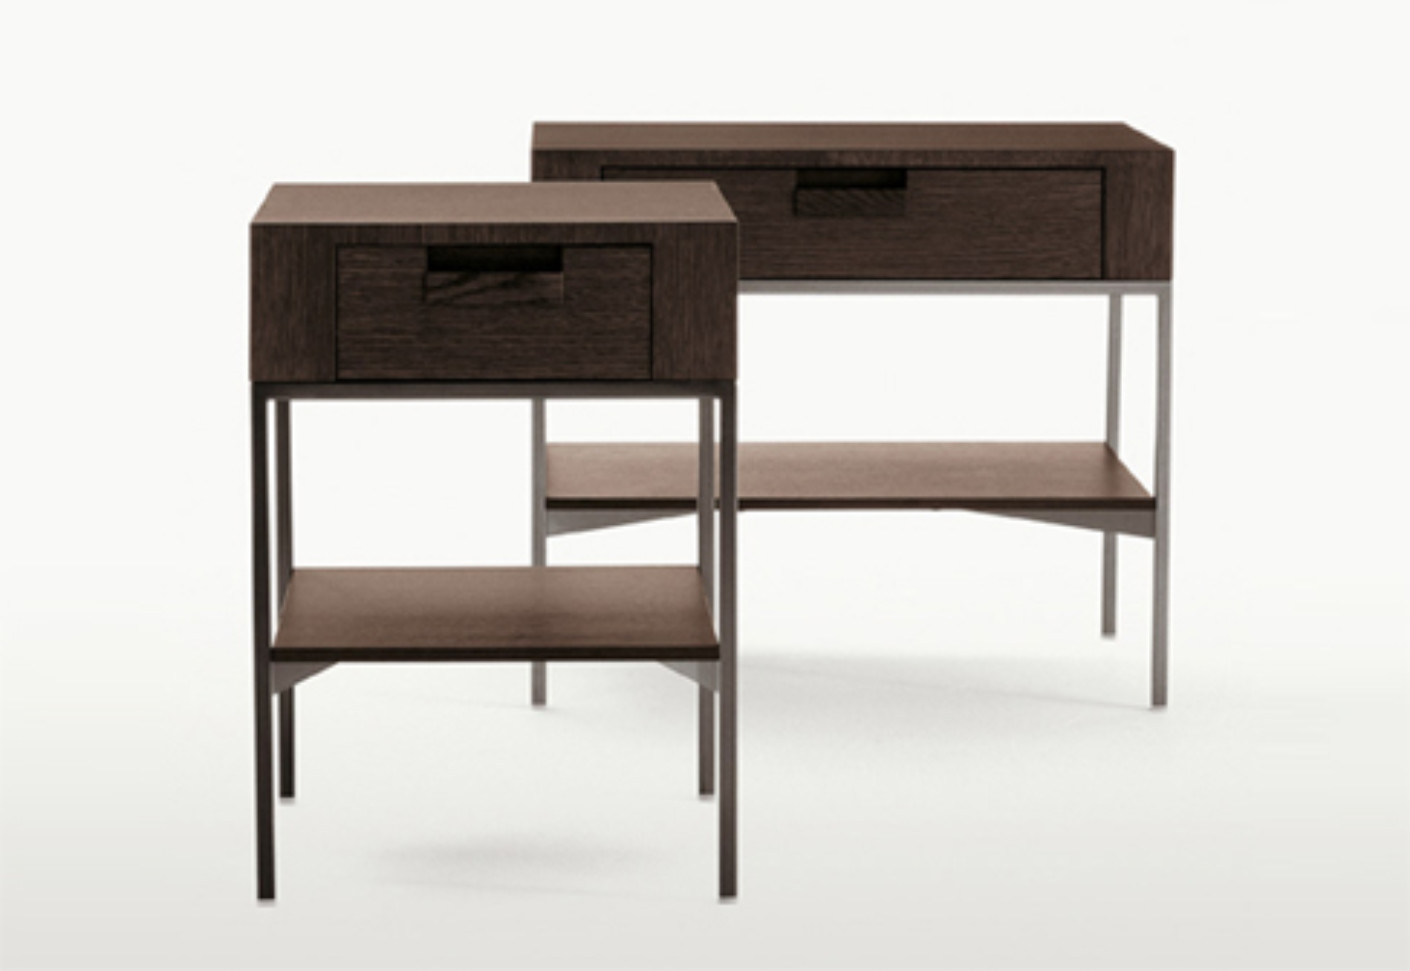 konsole mit schublade konsolentisch konsole in kernbuche. Black Bedroom Furniture Sets. Home Design Ideas